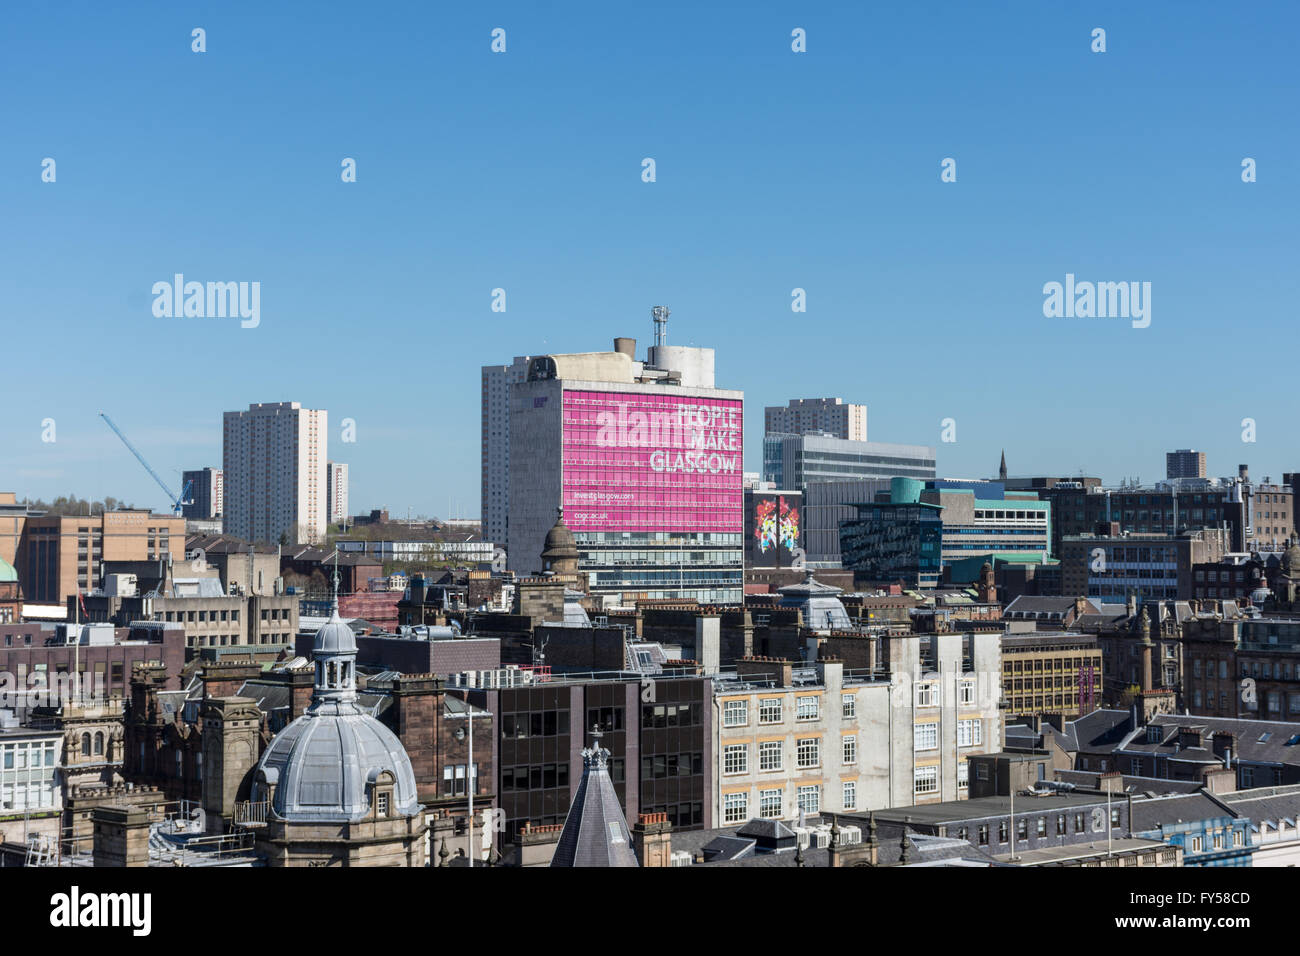 A skyline View of Glasgow City Centre Taken From The Lighthouse on Mitchell Lane - Stock Image